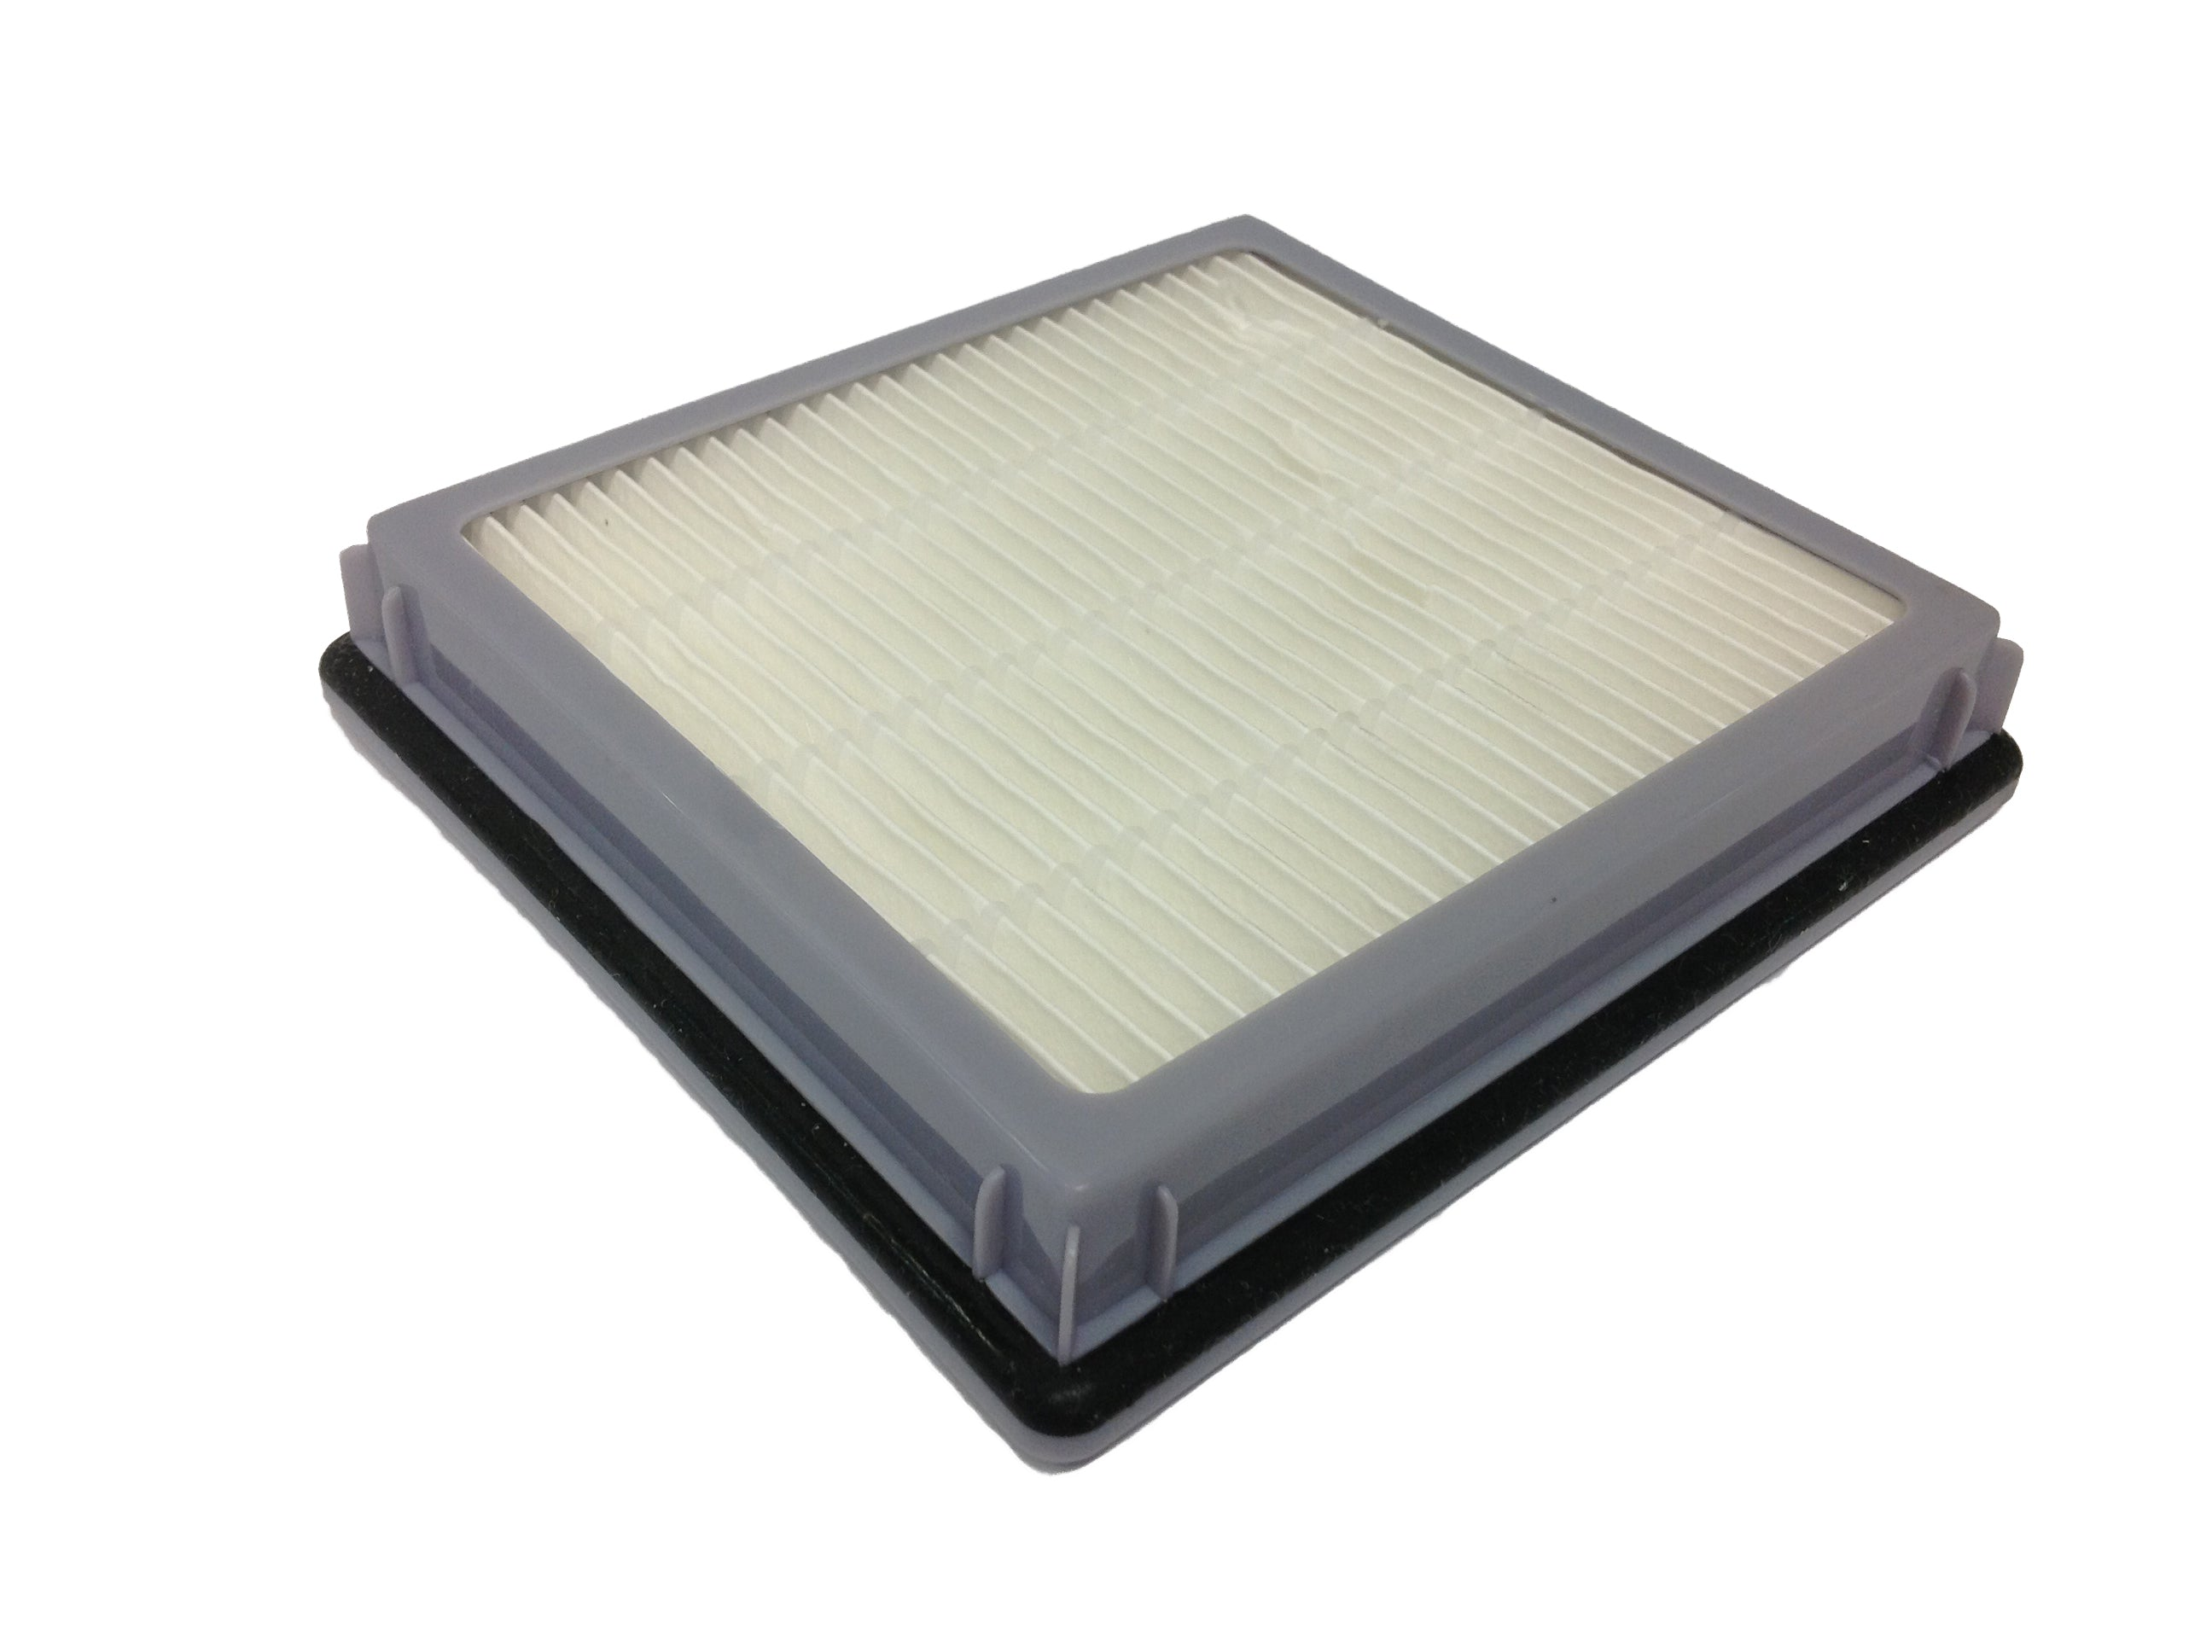 FILTA FILTER NILFISK GM200/300/400 - Sold by Single Unit in multiples of 1 Single Unit